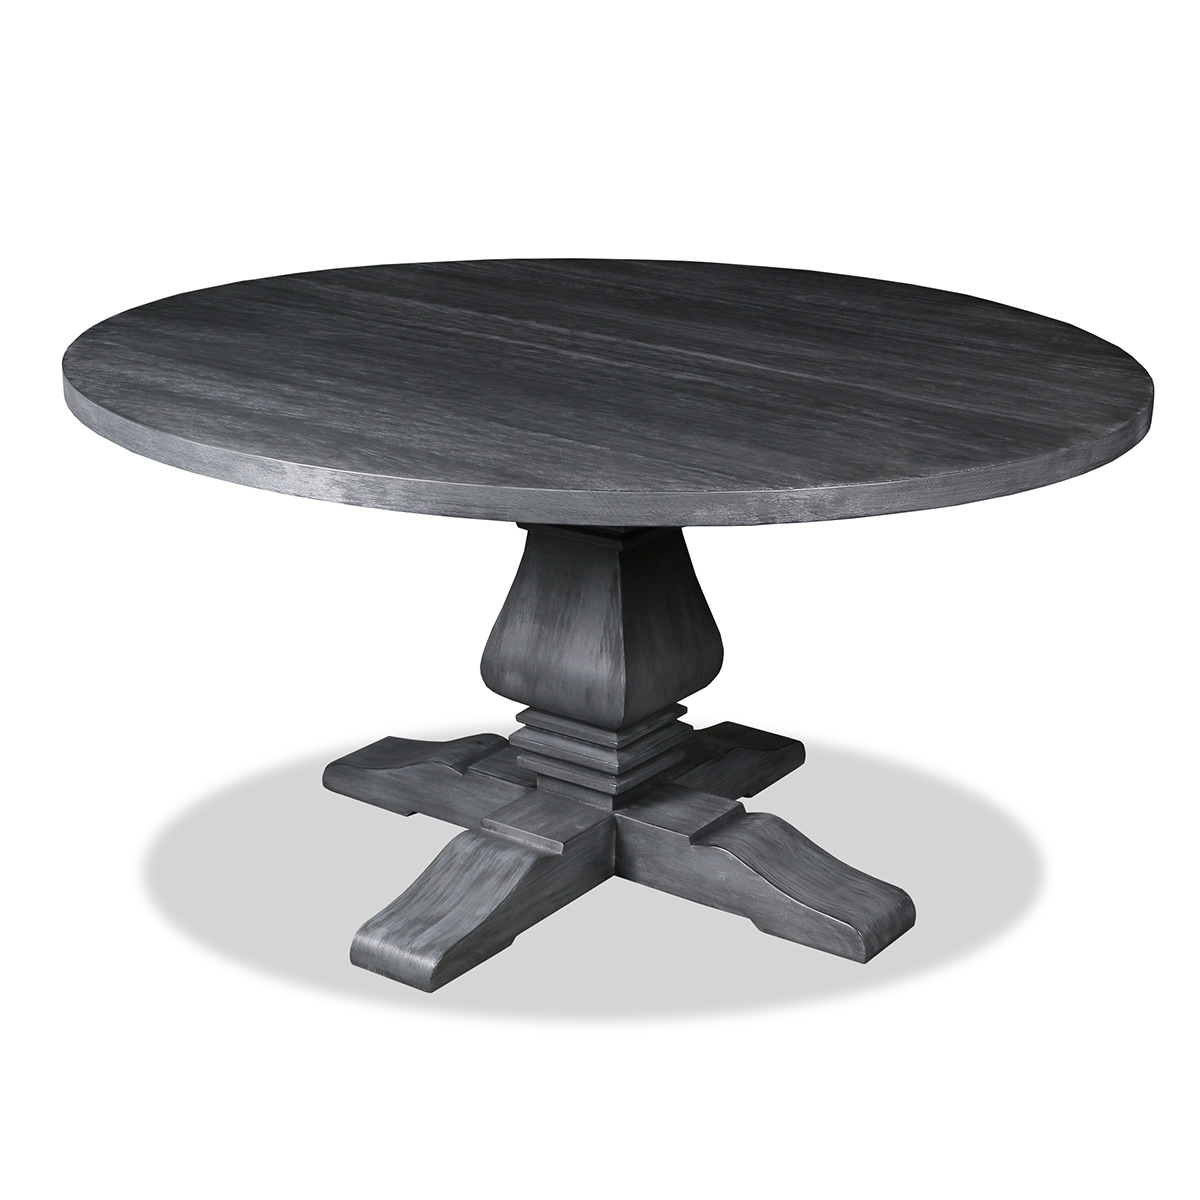 South Cone Home Toscana Reclaimed Wood Round Dining Table, Grey